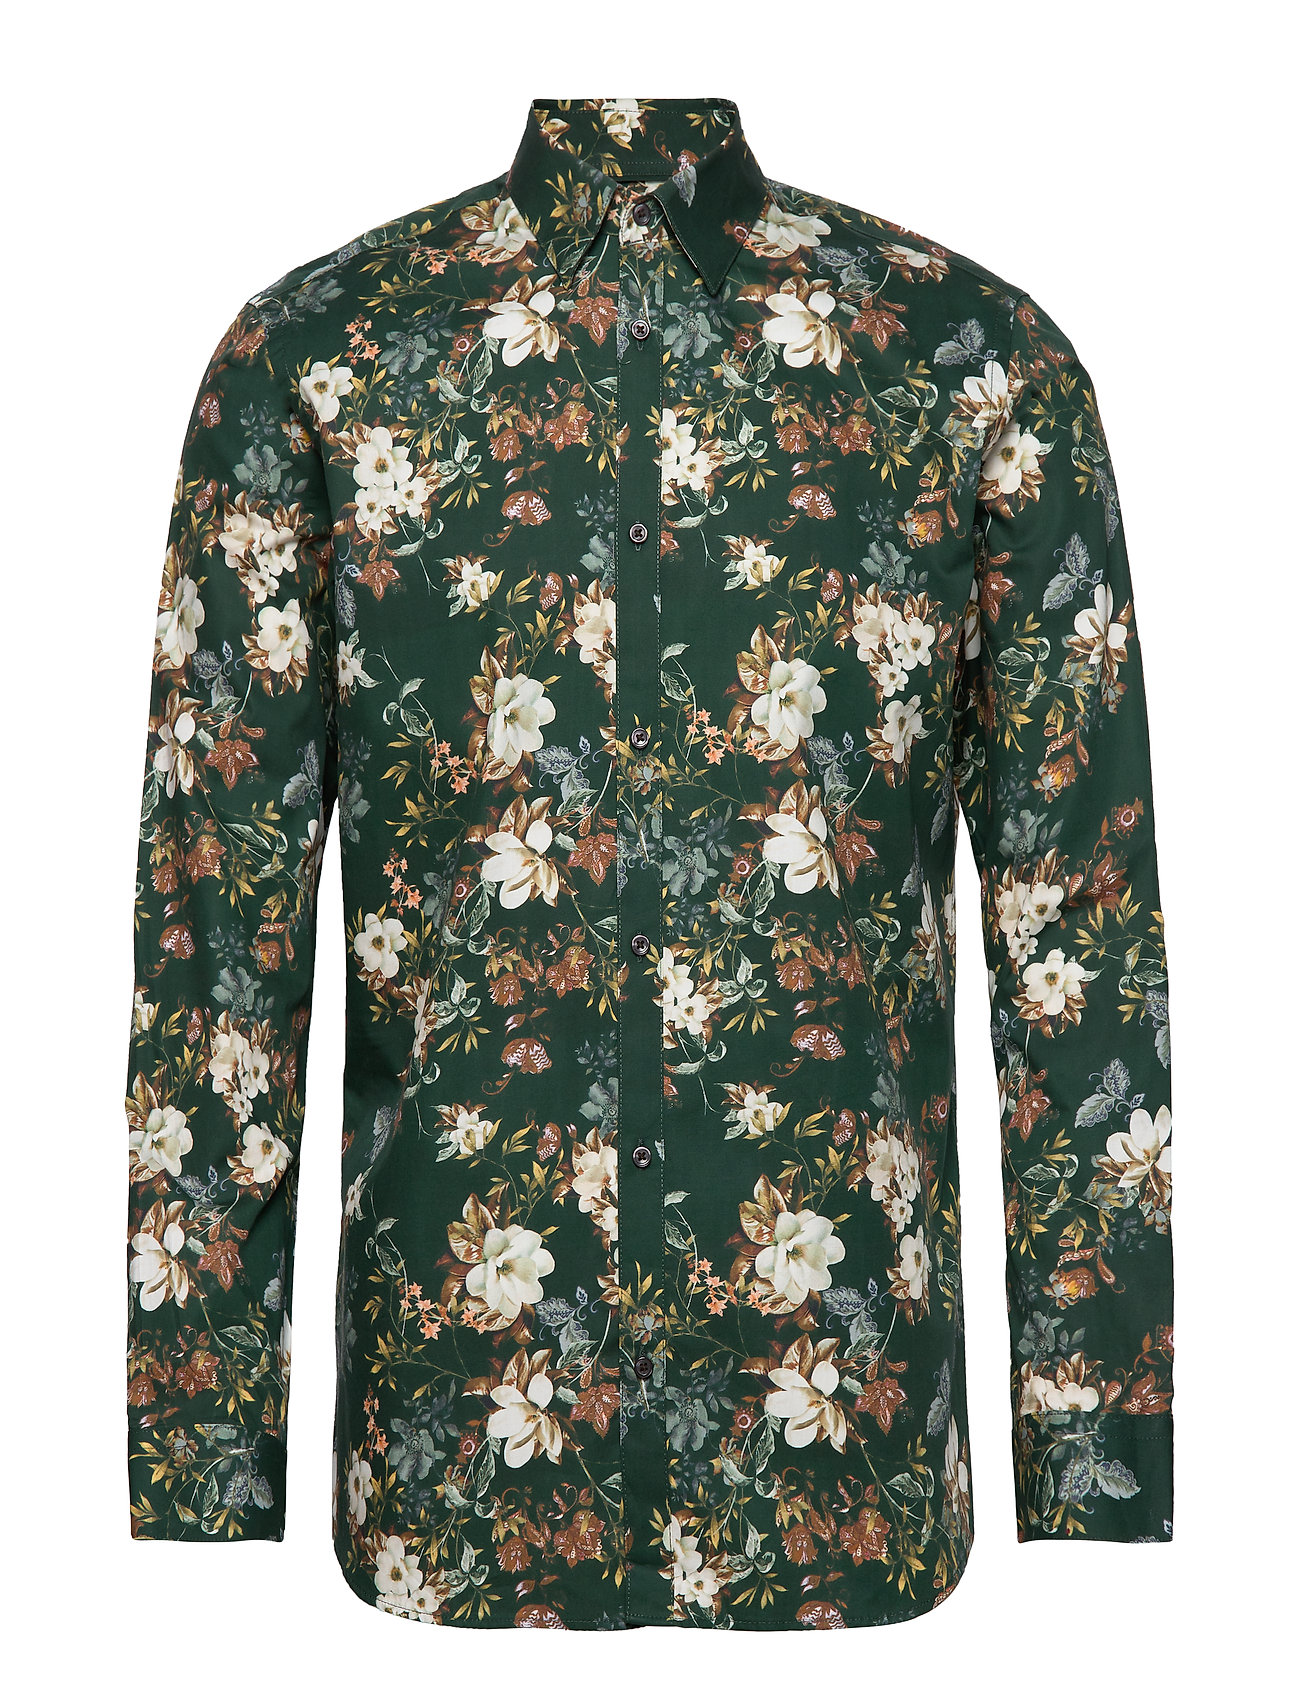 Jack & Jones JPRHANK FLOWER SHIRT L/S PLAIN - DARKEST SPRUCE